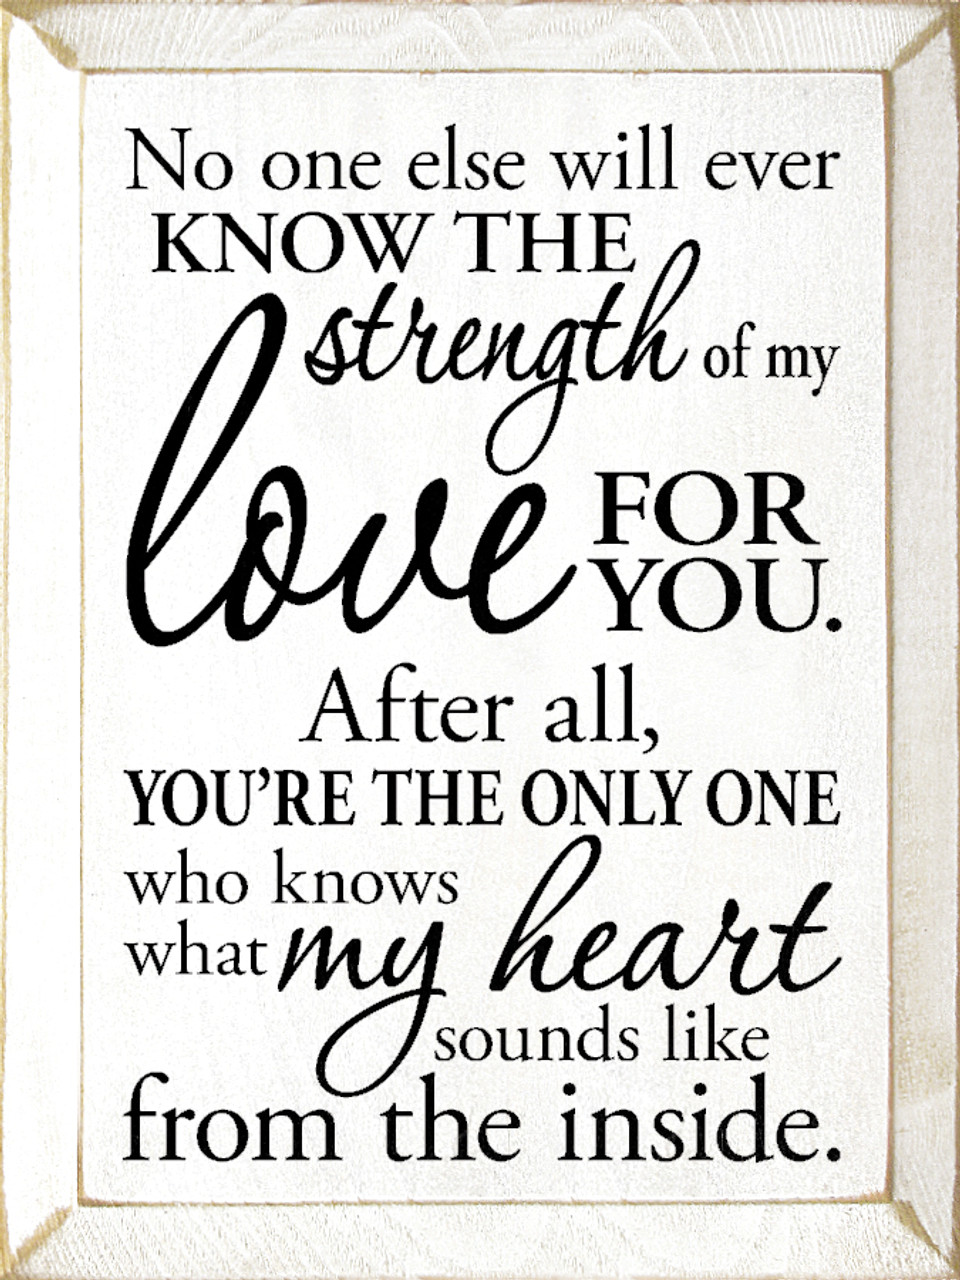 No One Else Will Ever Know The Strength Of My Love For You After All You Re The Only One Who Knows What My Heart Sounds Like From The Inside